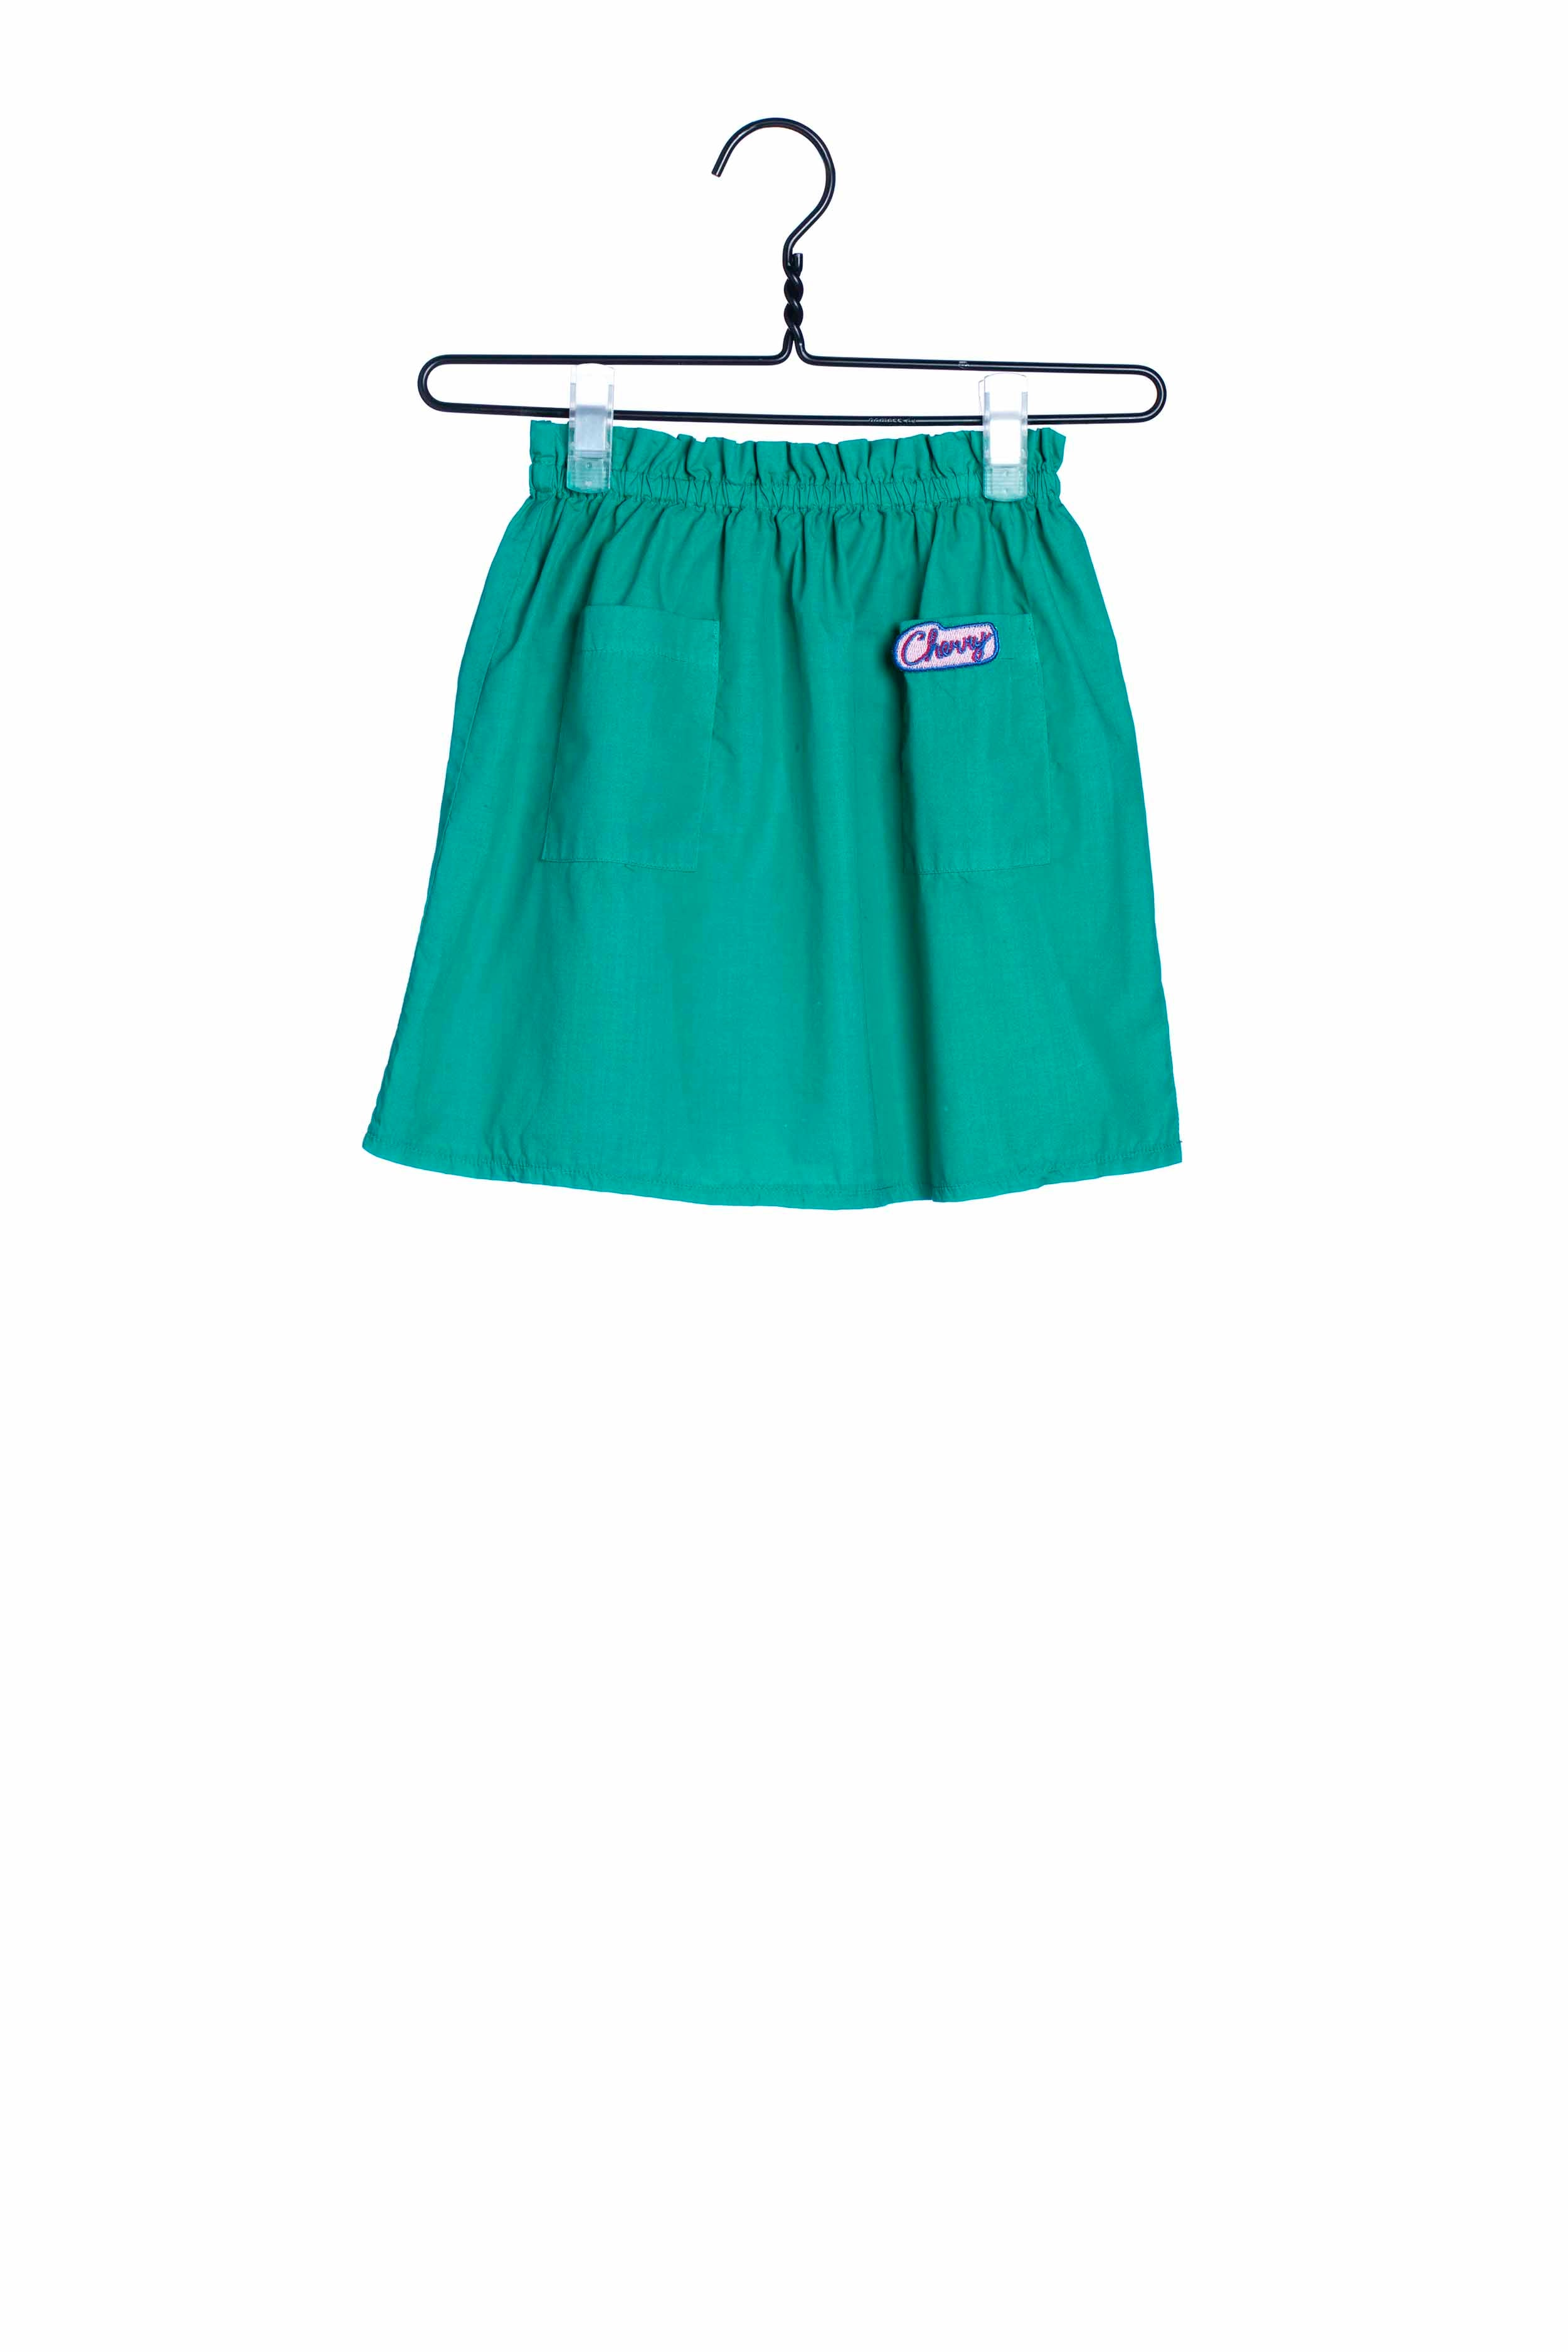 1731 Pocket Skirt - Green